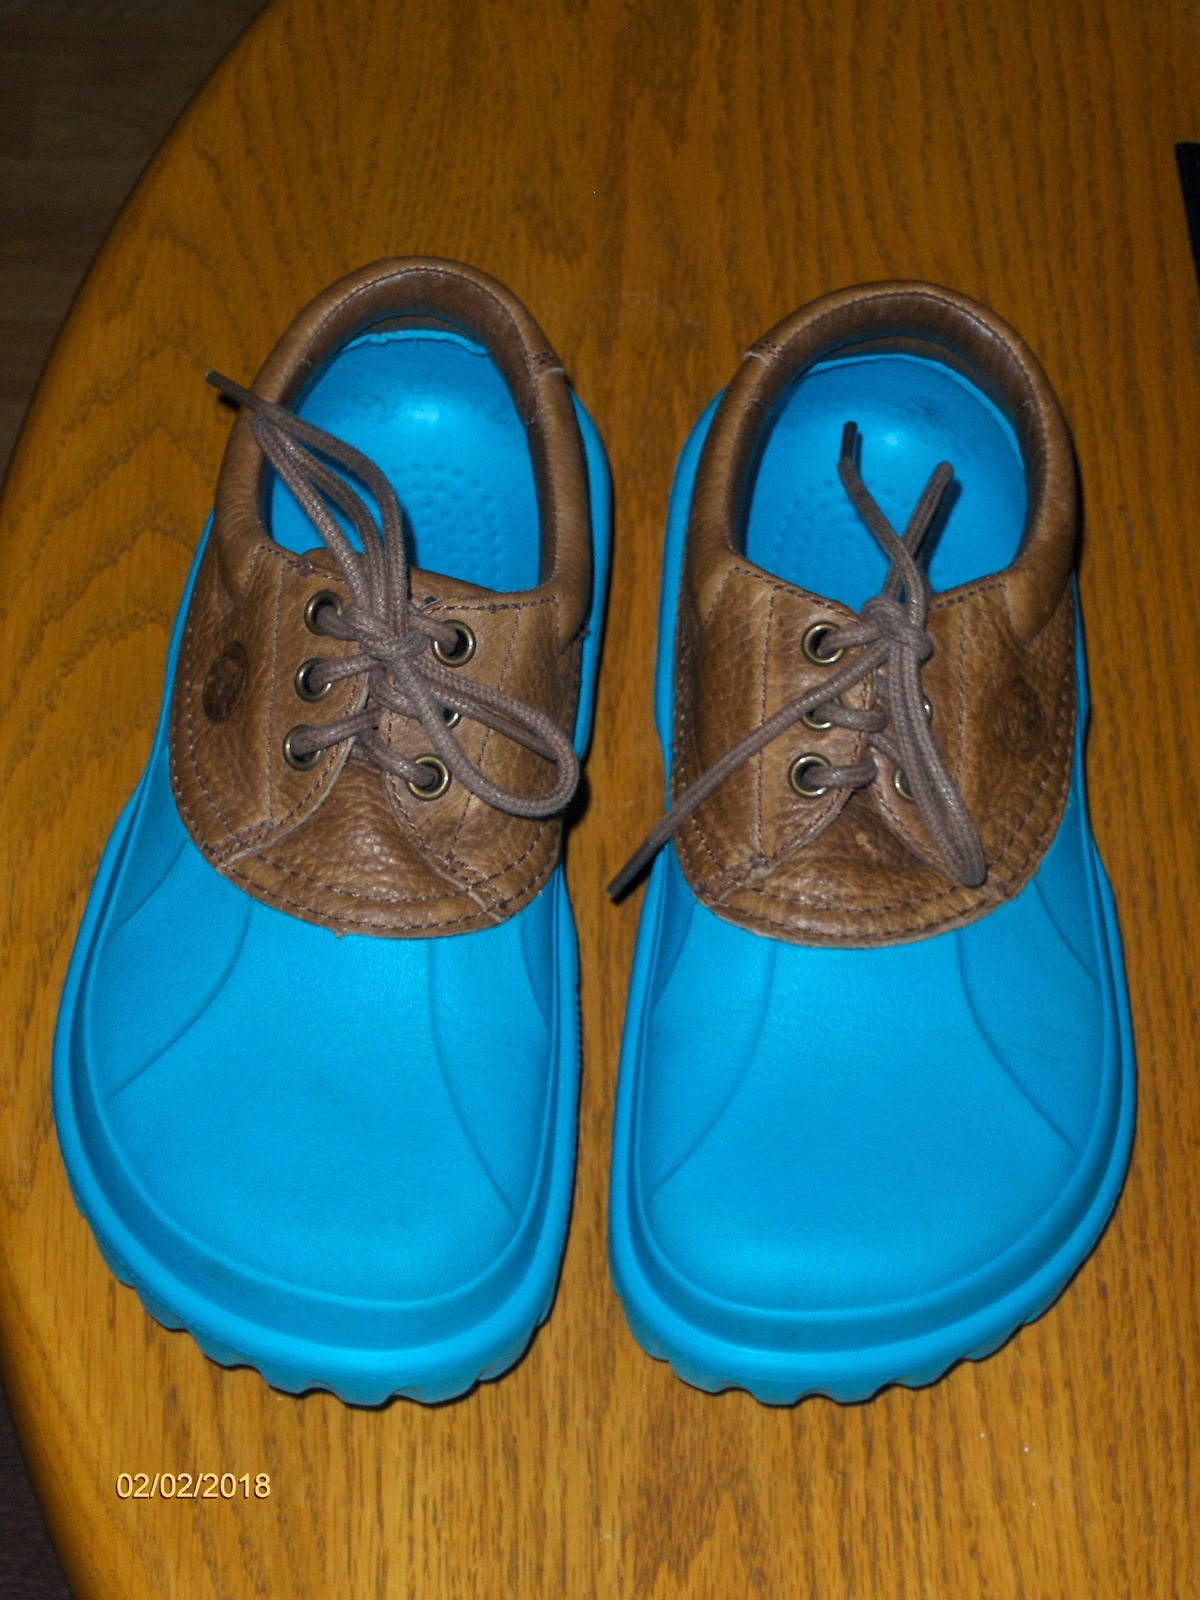 2009b5c74331c8 Crocs Axle All Terrain Blue Islander Boat Shoes Brown Leather Upper Womens  W8 M6